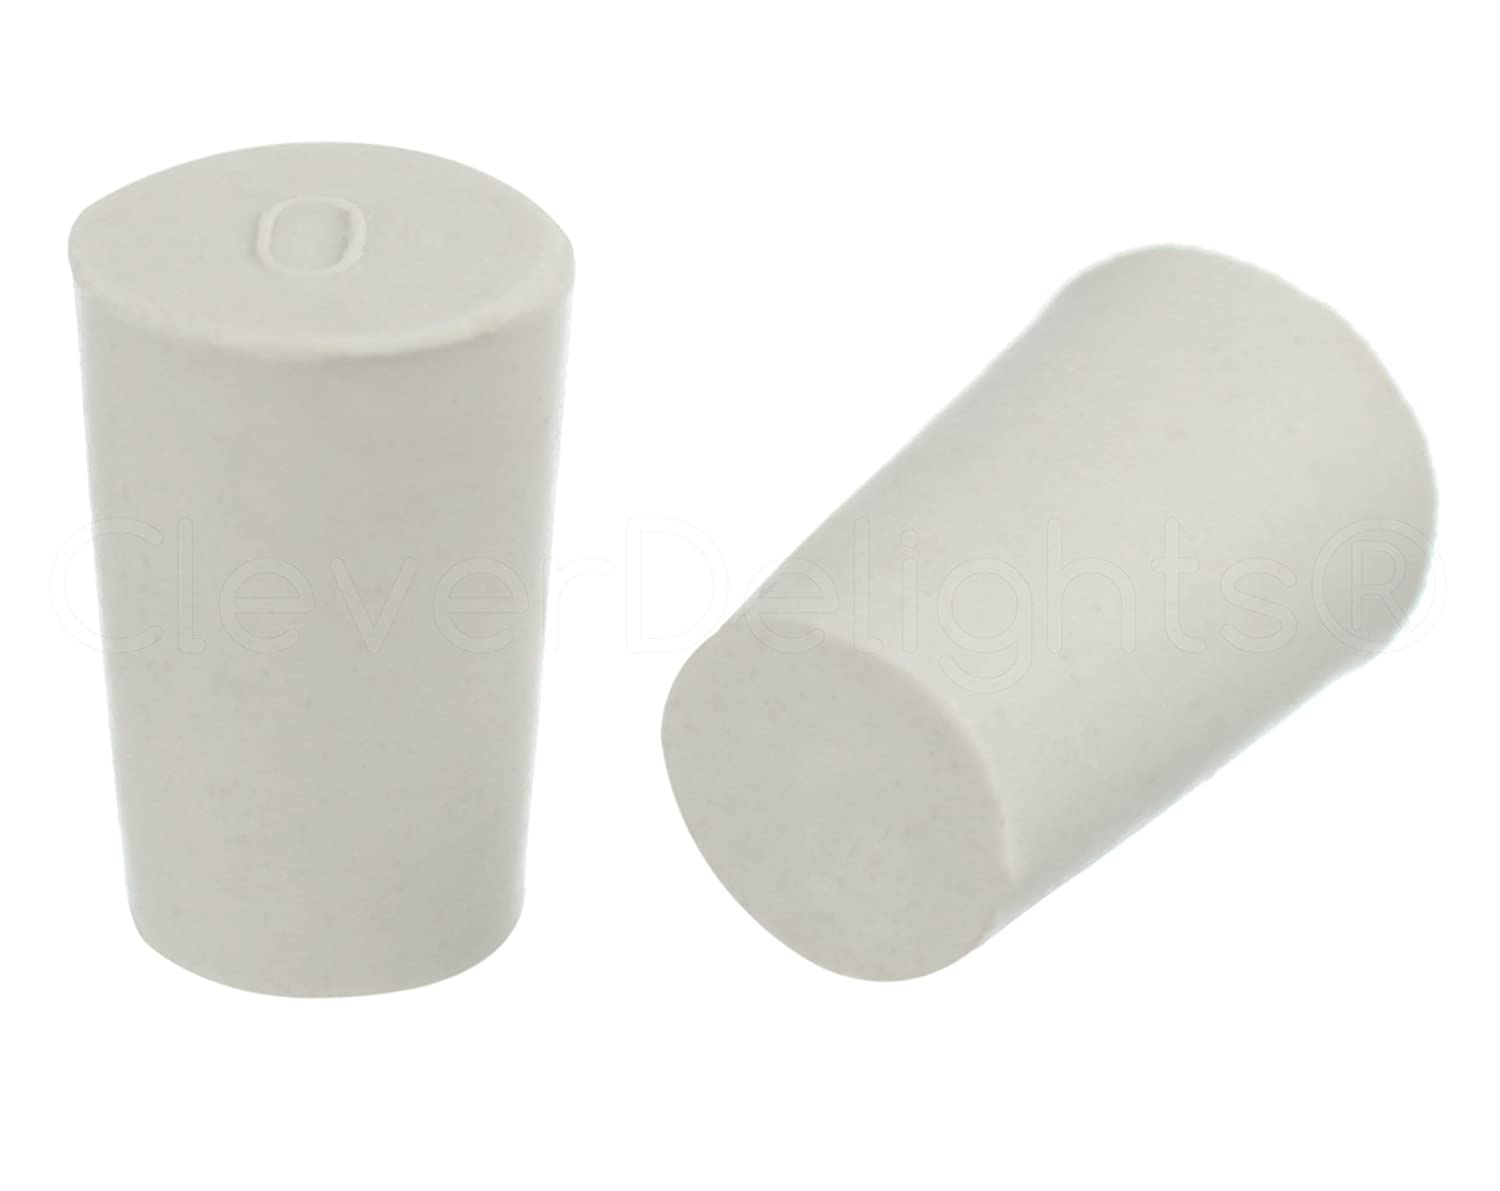 10 Pack - CleverDelights Solid Rubber Stoppers | Size 0 | 17mm x 13mm - 24mm Long - White Lab Plug #0